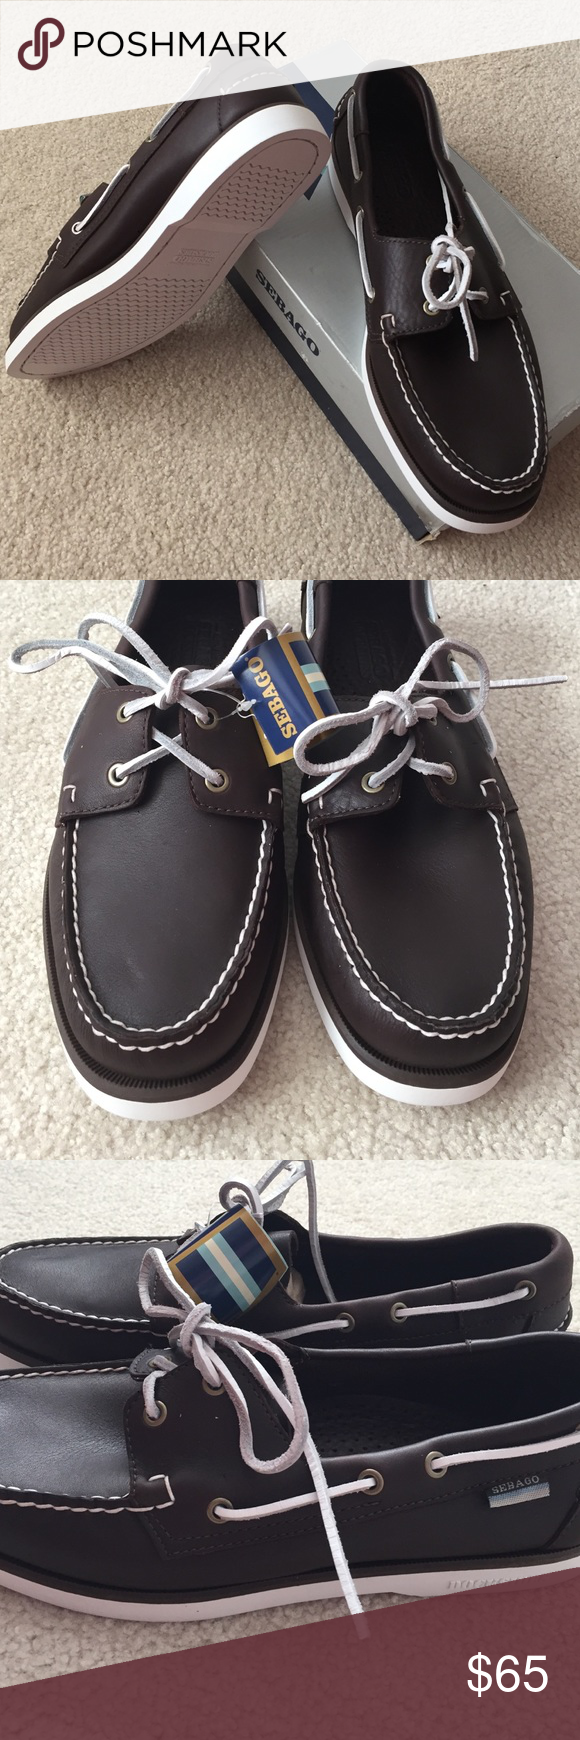 b0e2e7a17cac9 Men's Sebago Docksides 100% leather uppers, brand new condition. Color  chocolate brown with white laces and white soles.